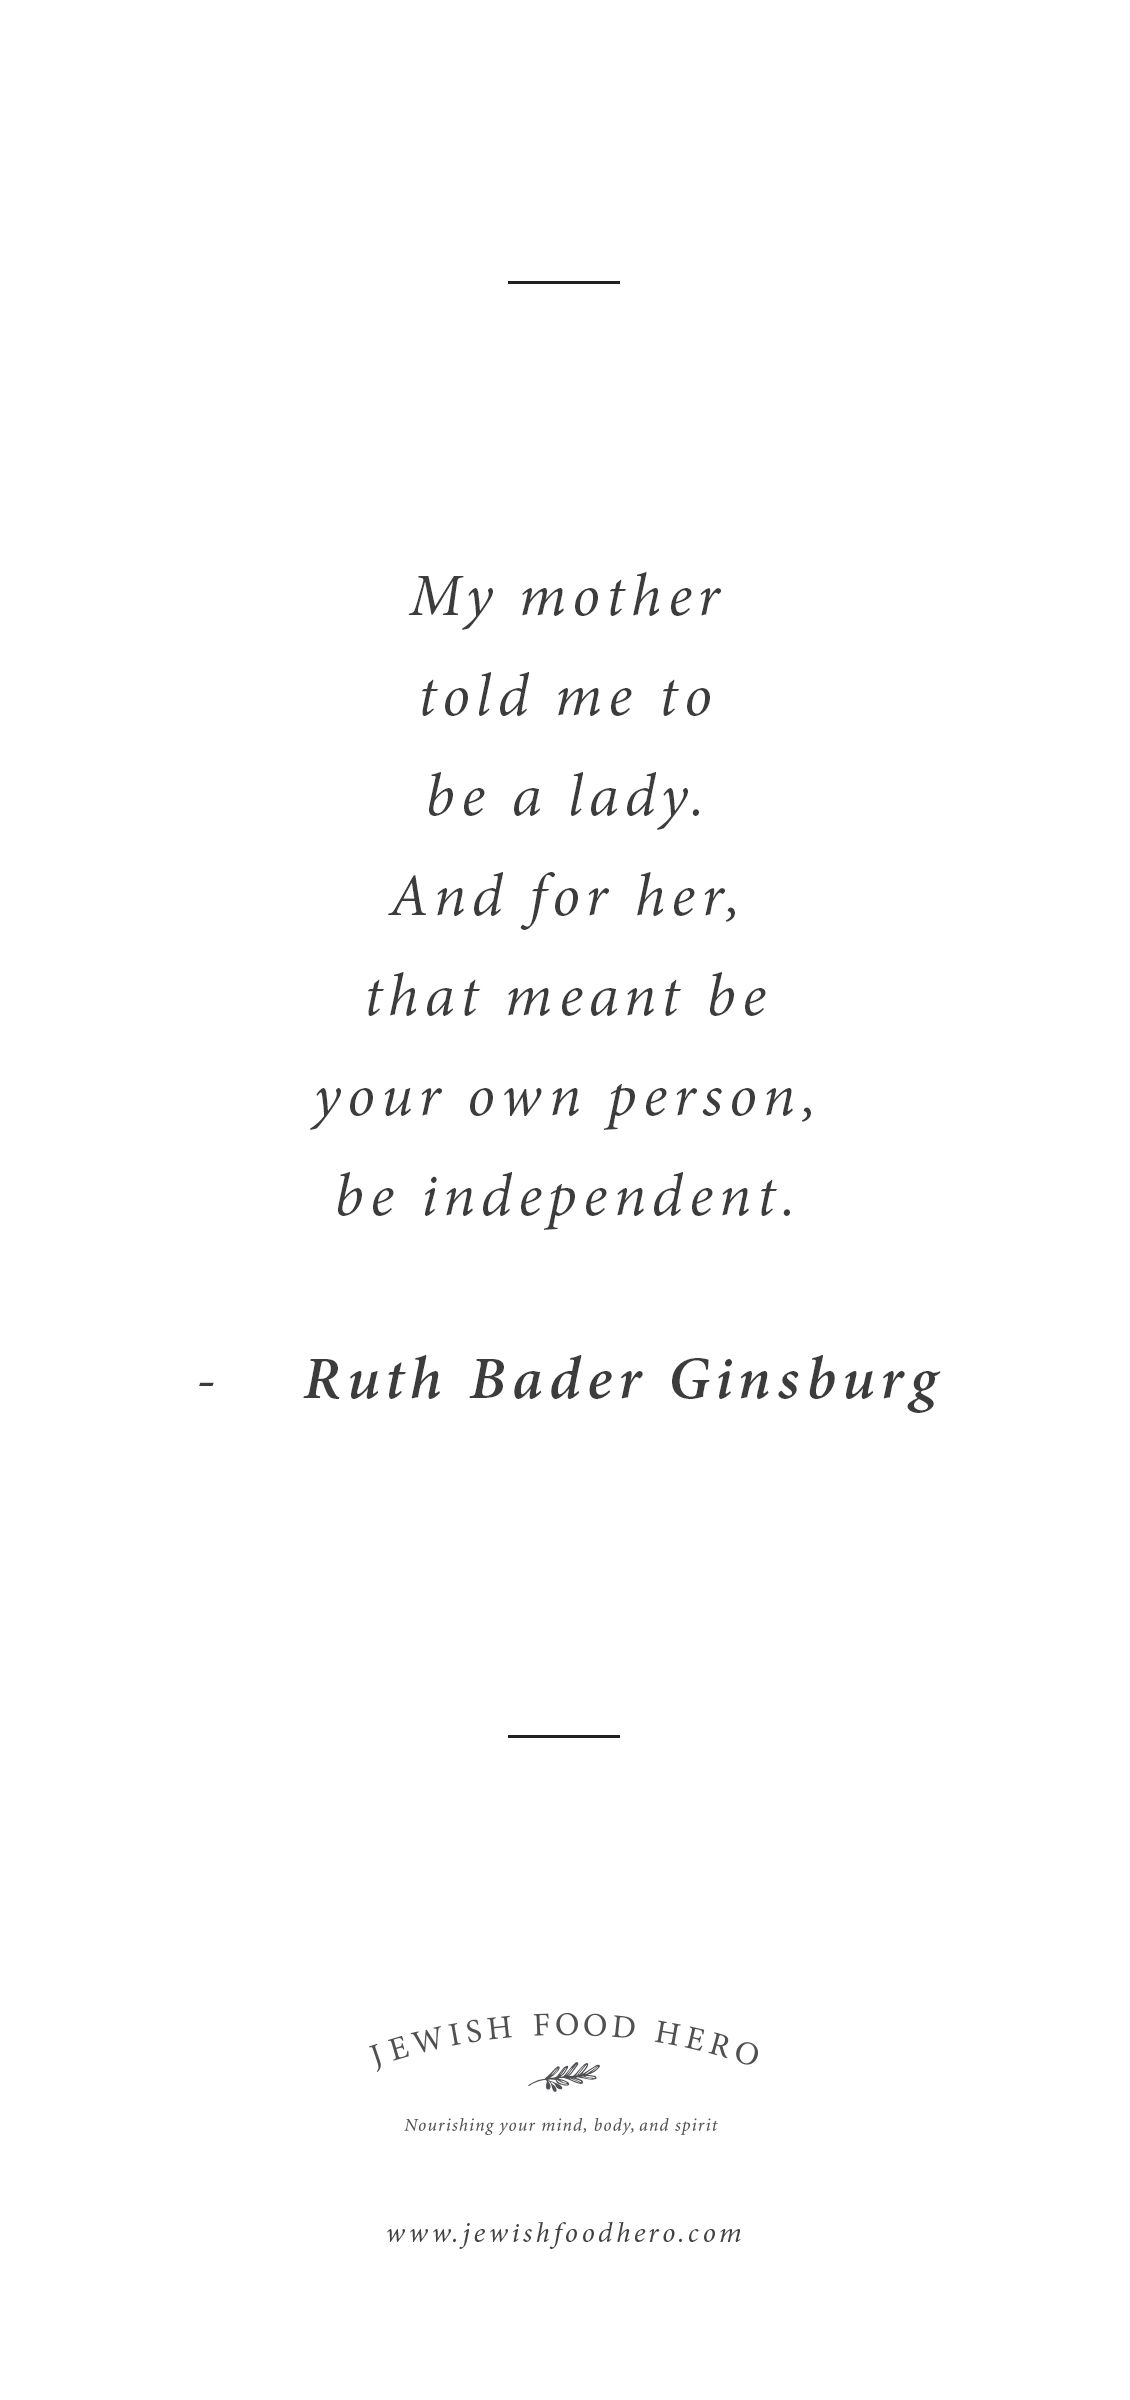 Jewish Love Quotes Ruth Bader Ginsburg Quotation  From Jewish Food Hero  Pinterest